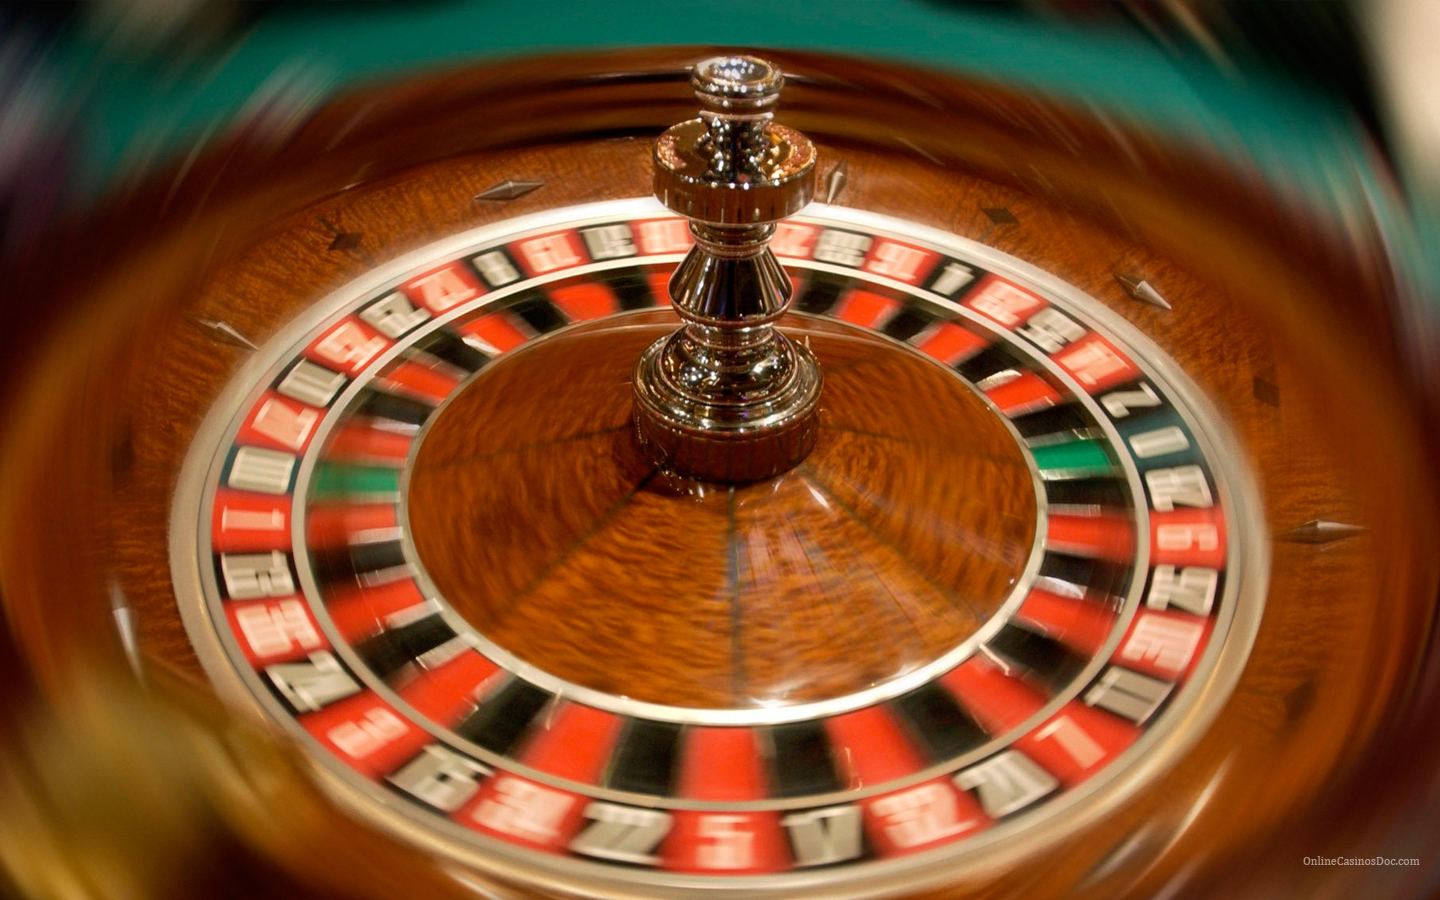 Can casinos cheat on roulette